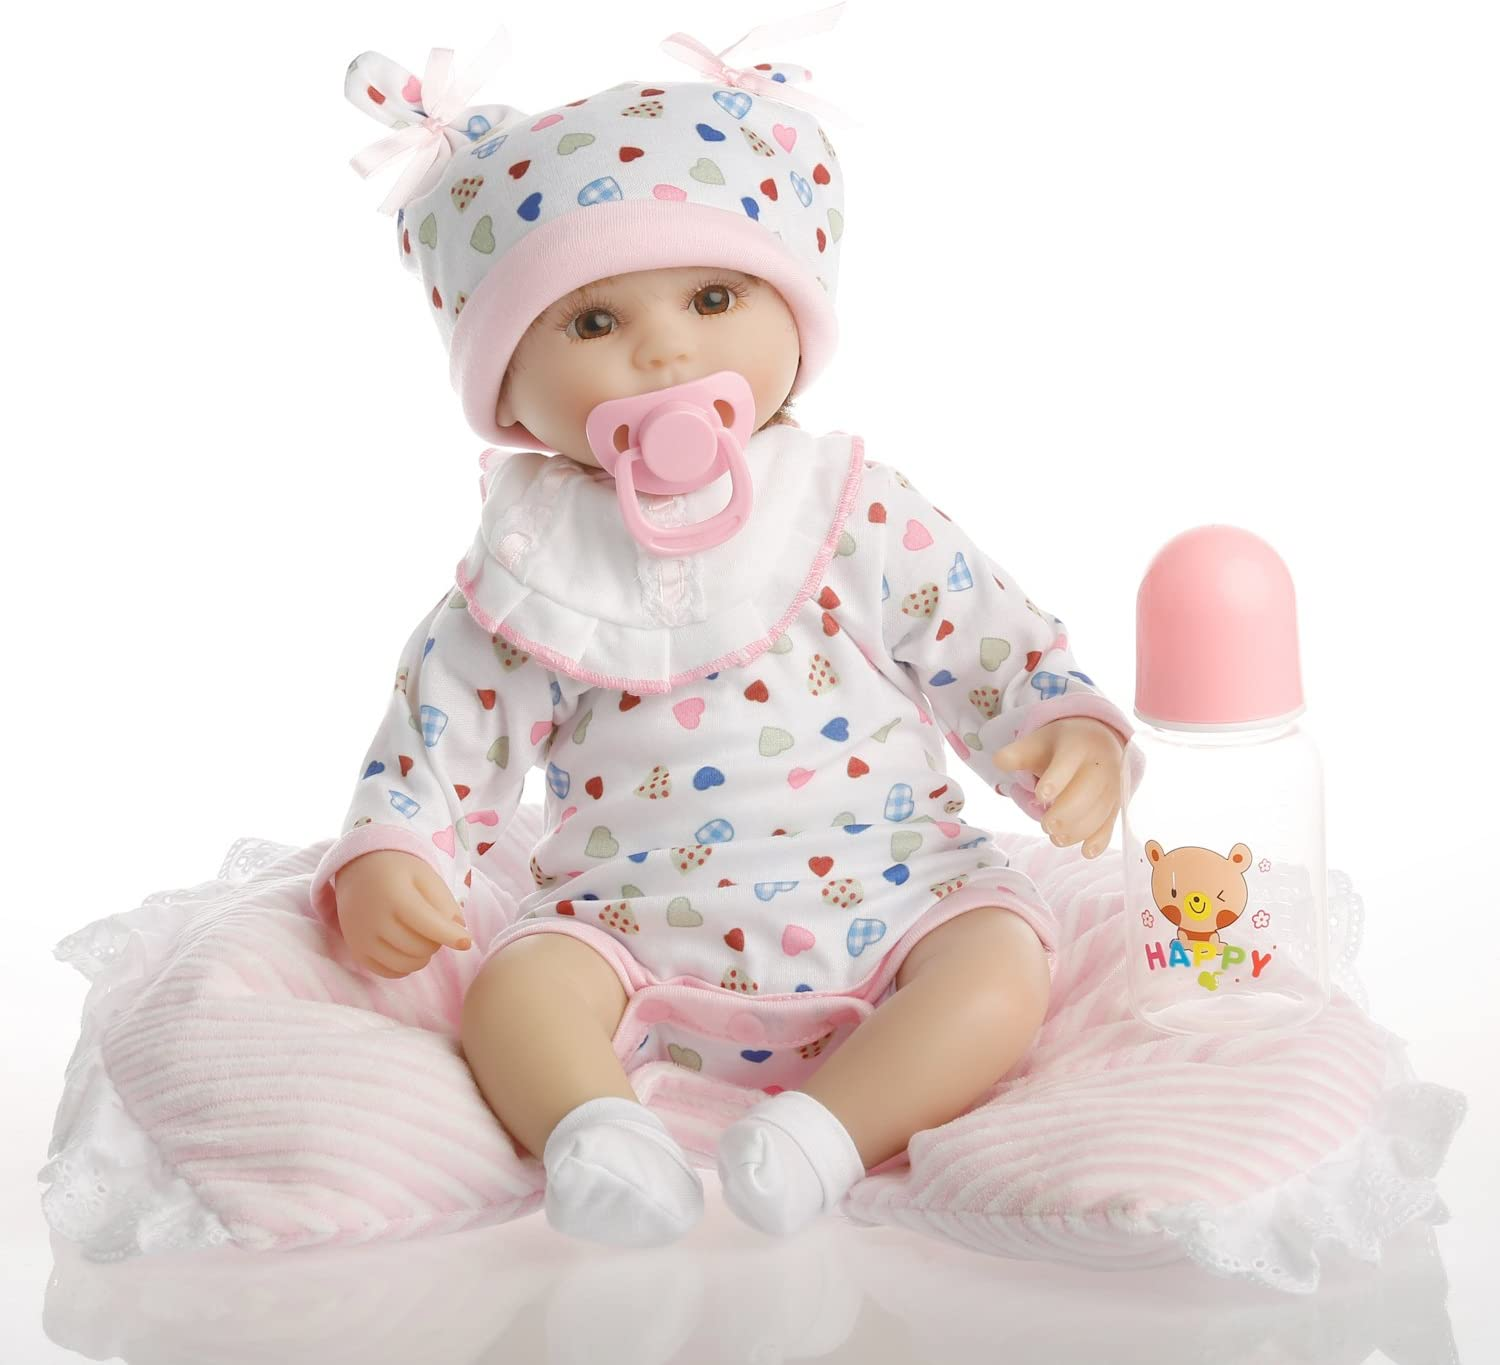 Top 10 Best Silicone Baby Dolls (2020 Reviews & Buying Guide) 5